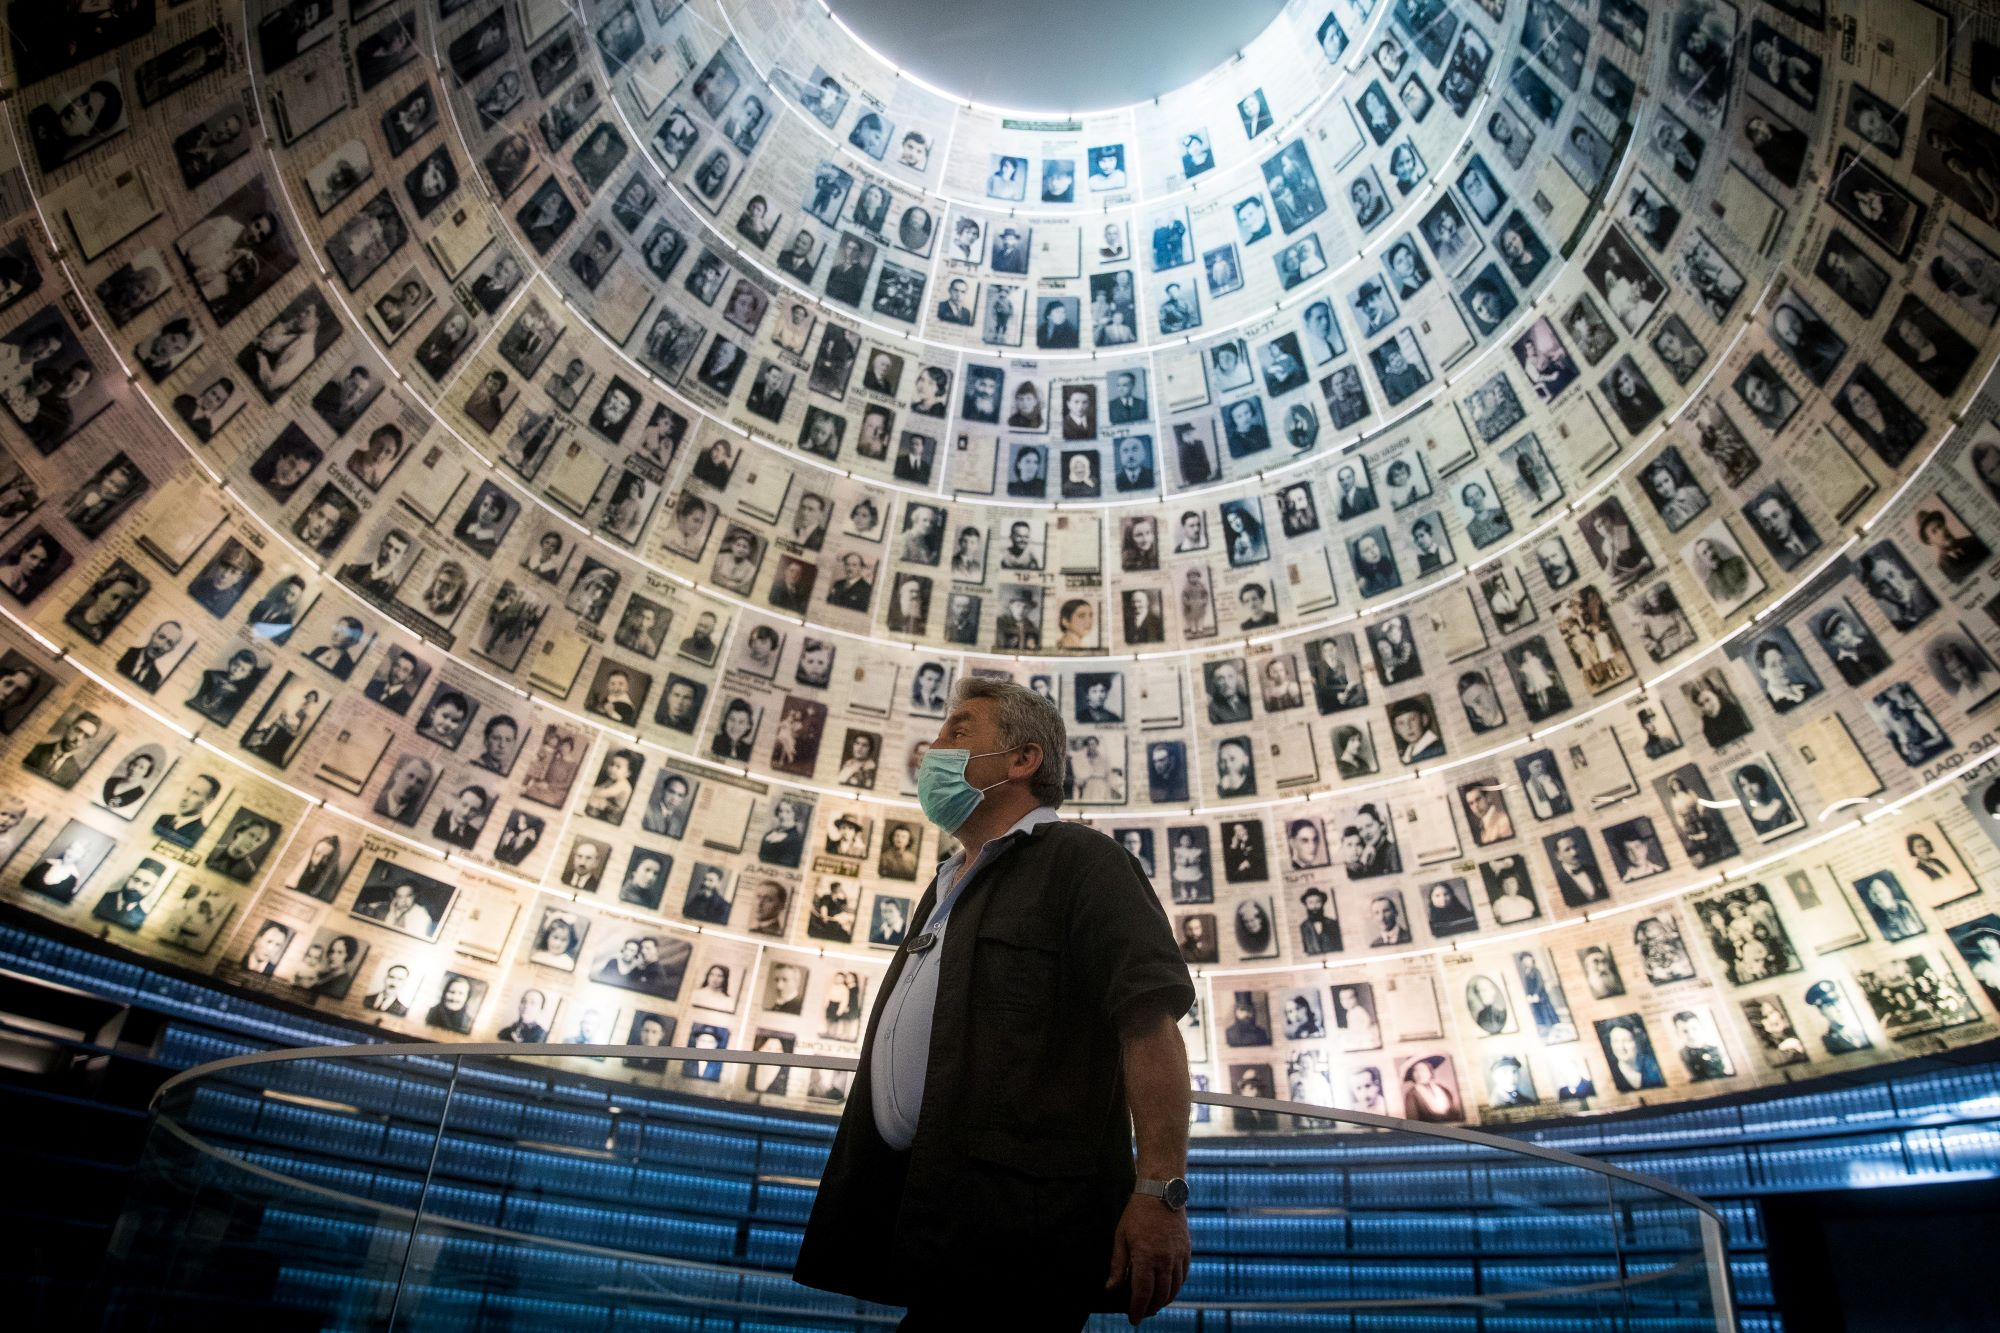 Yad Vashem security guard stands at the empty Hall of Names in the Yad Vashem Holocaust Memorial Museum in Jerusalem, April 19, 2020. (Yonatan Sindel/Flash90)